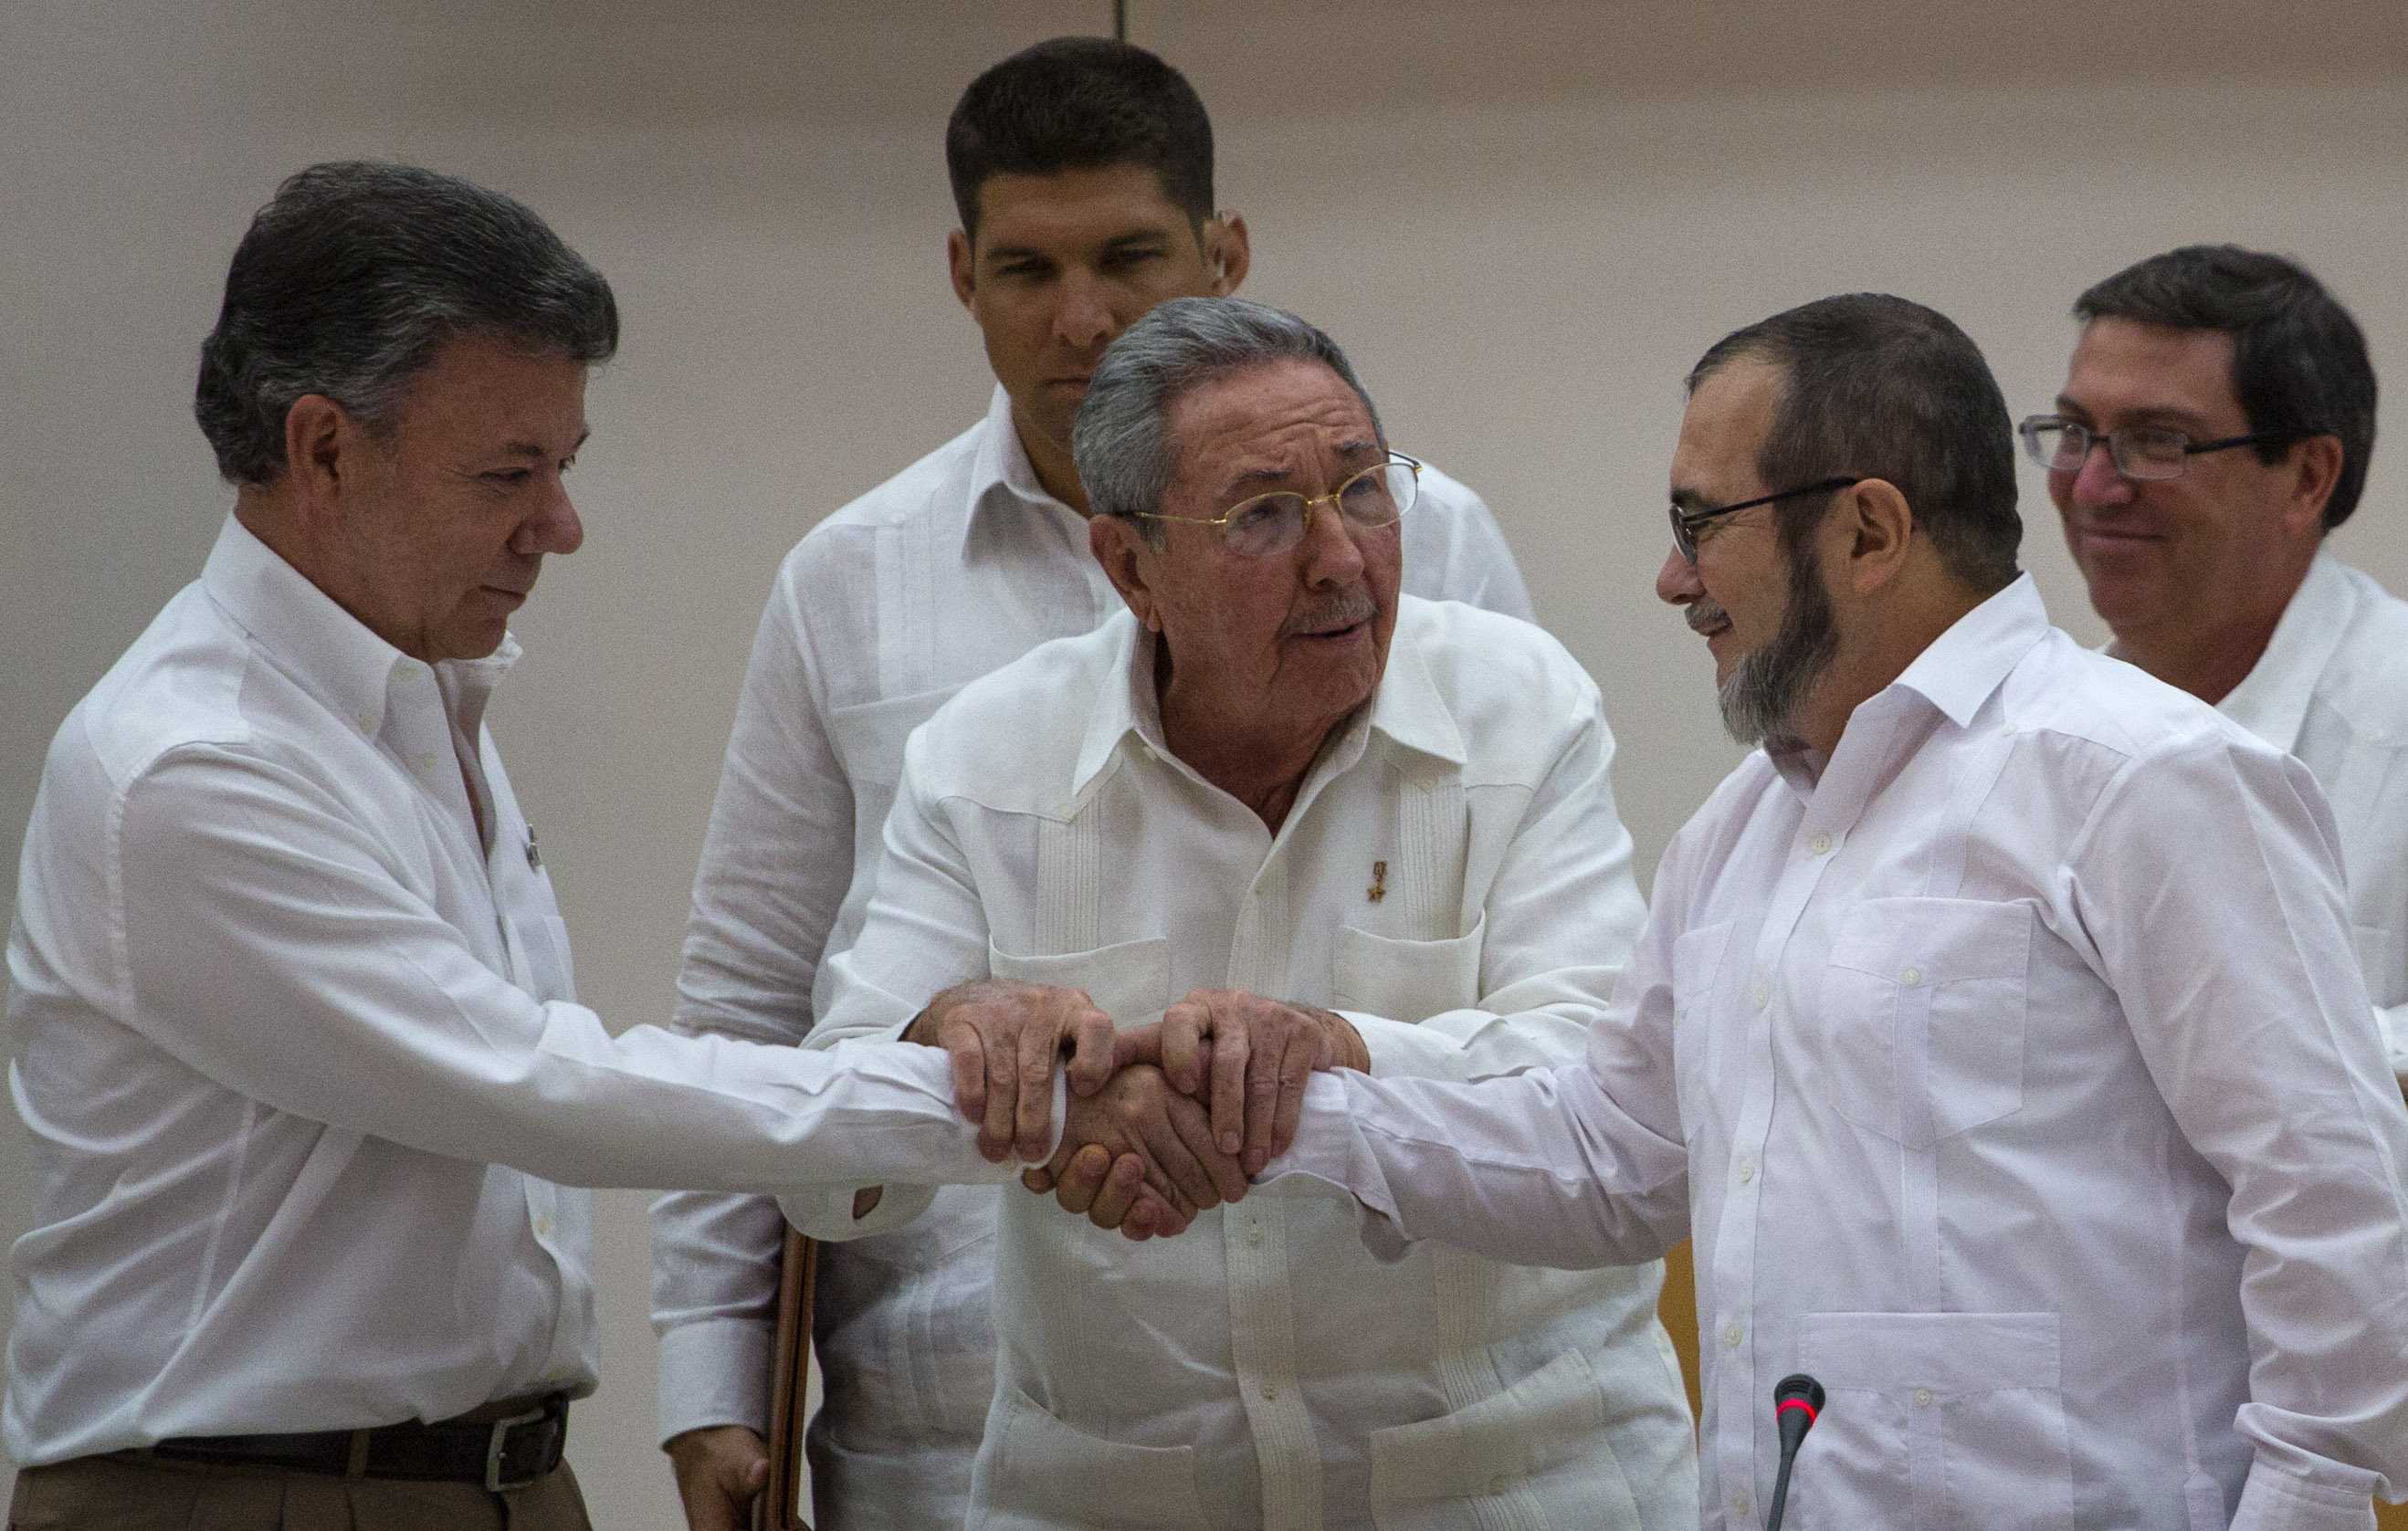 """Cuba's President Raul Castro, center, encourages Colombian President Juan Manuel Santos, left, and Commander the Revolutionary Armed Forces of Colombia or FARC, Timoleon Jimenez, known as """"Timochenko,"""" to shake hands, in Havana, Cuba, Sept. 23, 2015...."""